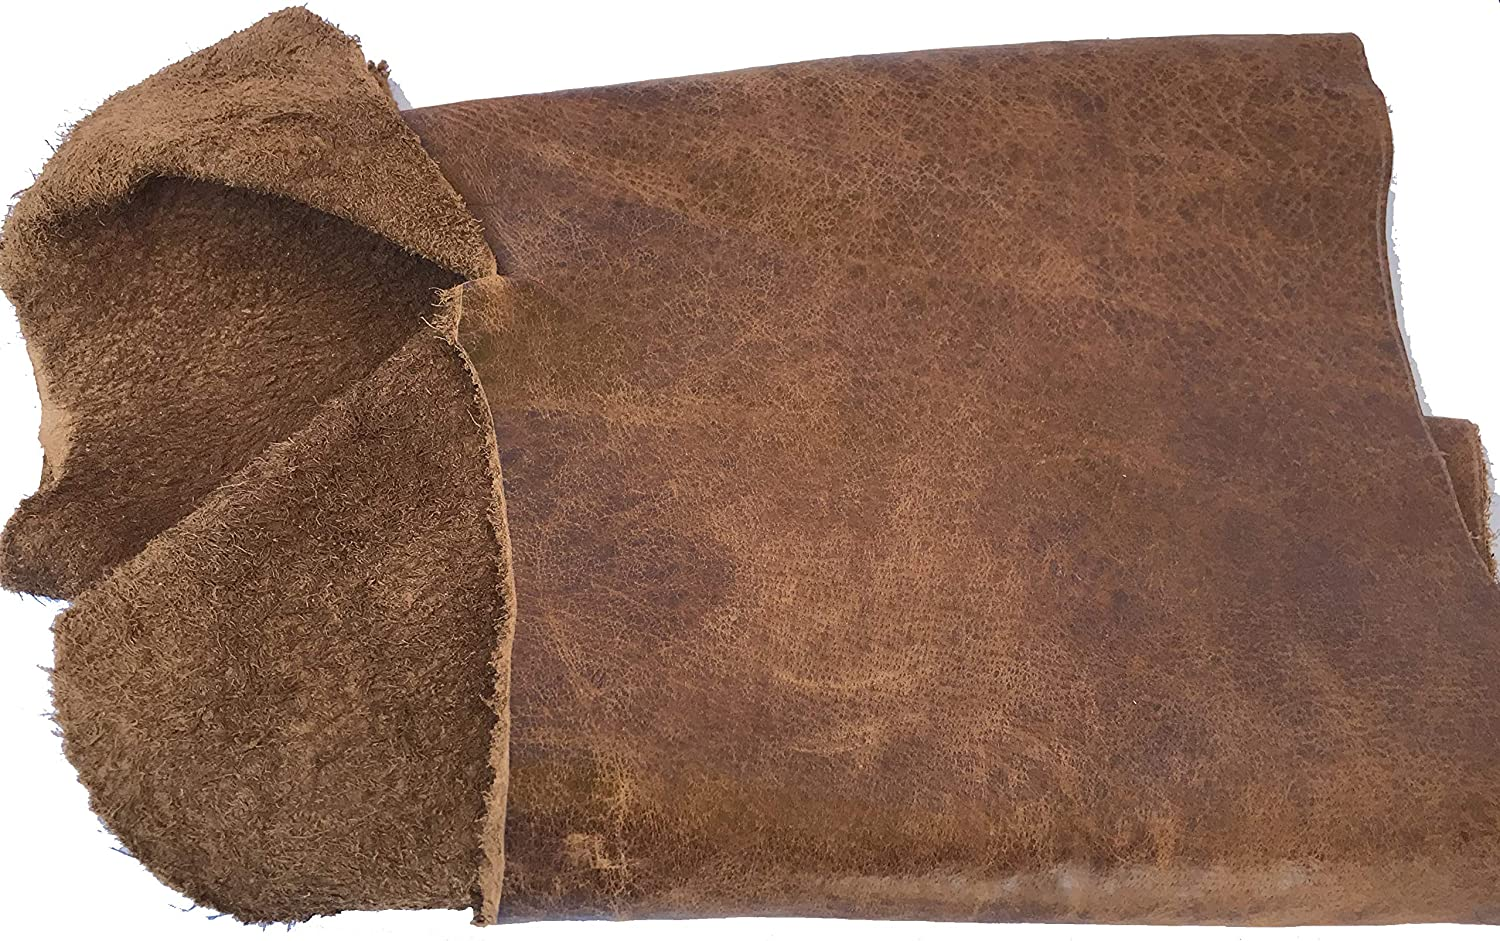 leather scraps; eco friendly; scrapbooking; crafting; leather working Beige DAMAGED LARGE Perforated Cowhide Genuine Leather Piece 3P1